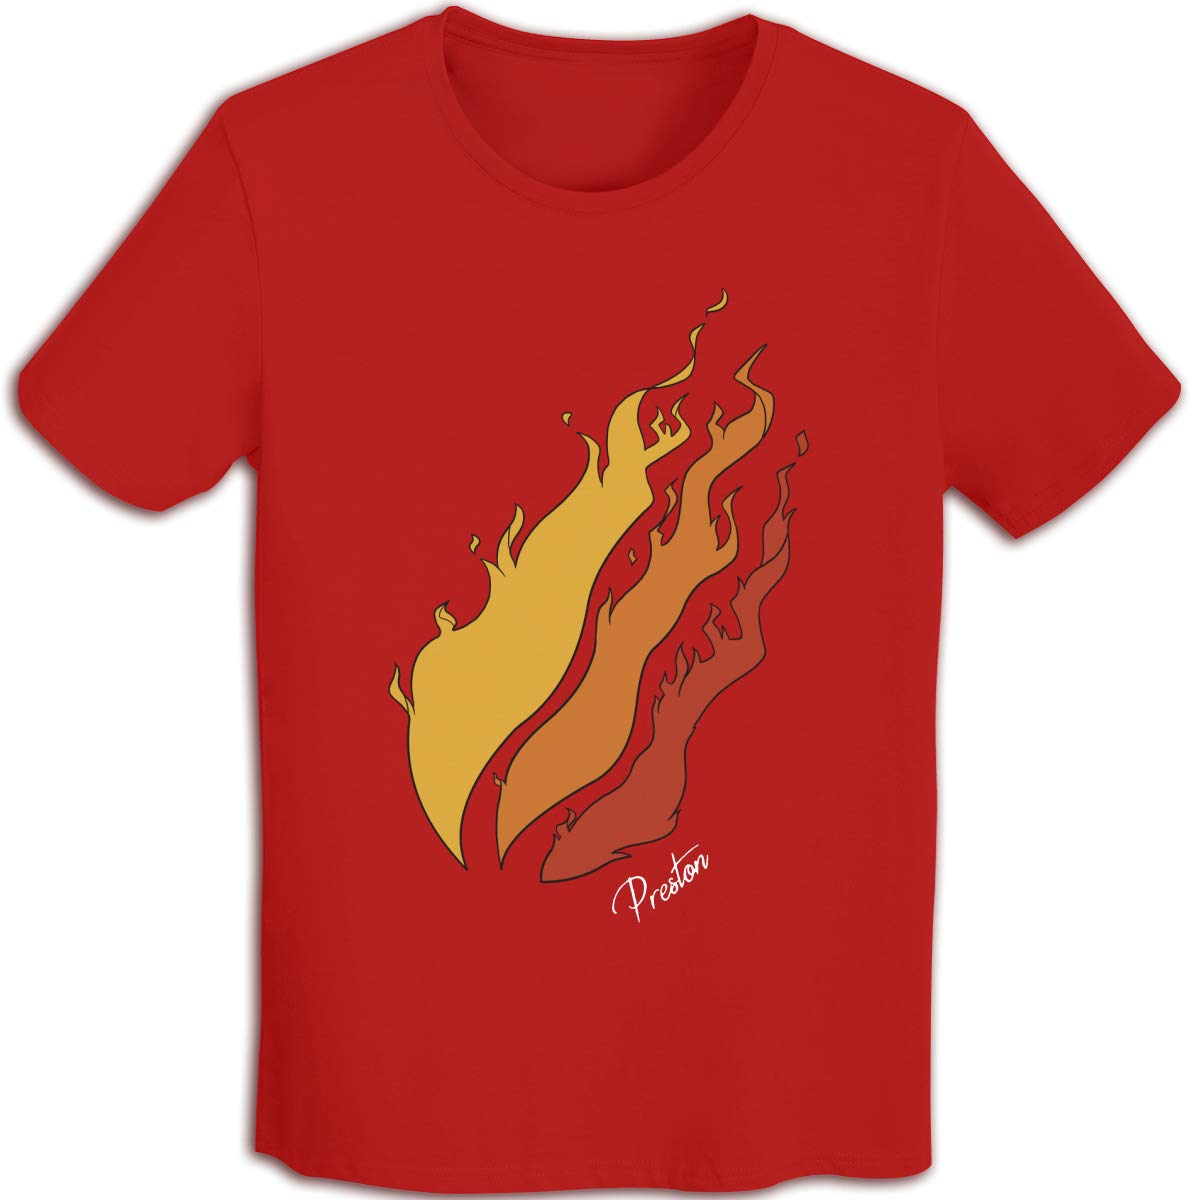 Cool Preston Playz Shirts Casual Short Sleve T-Shirt Pure Cotton Tops for Teenagers Boys Girls